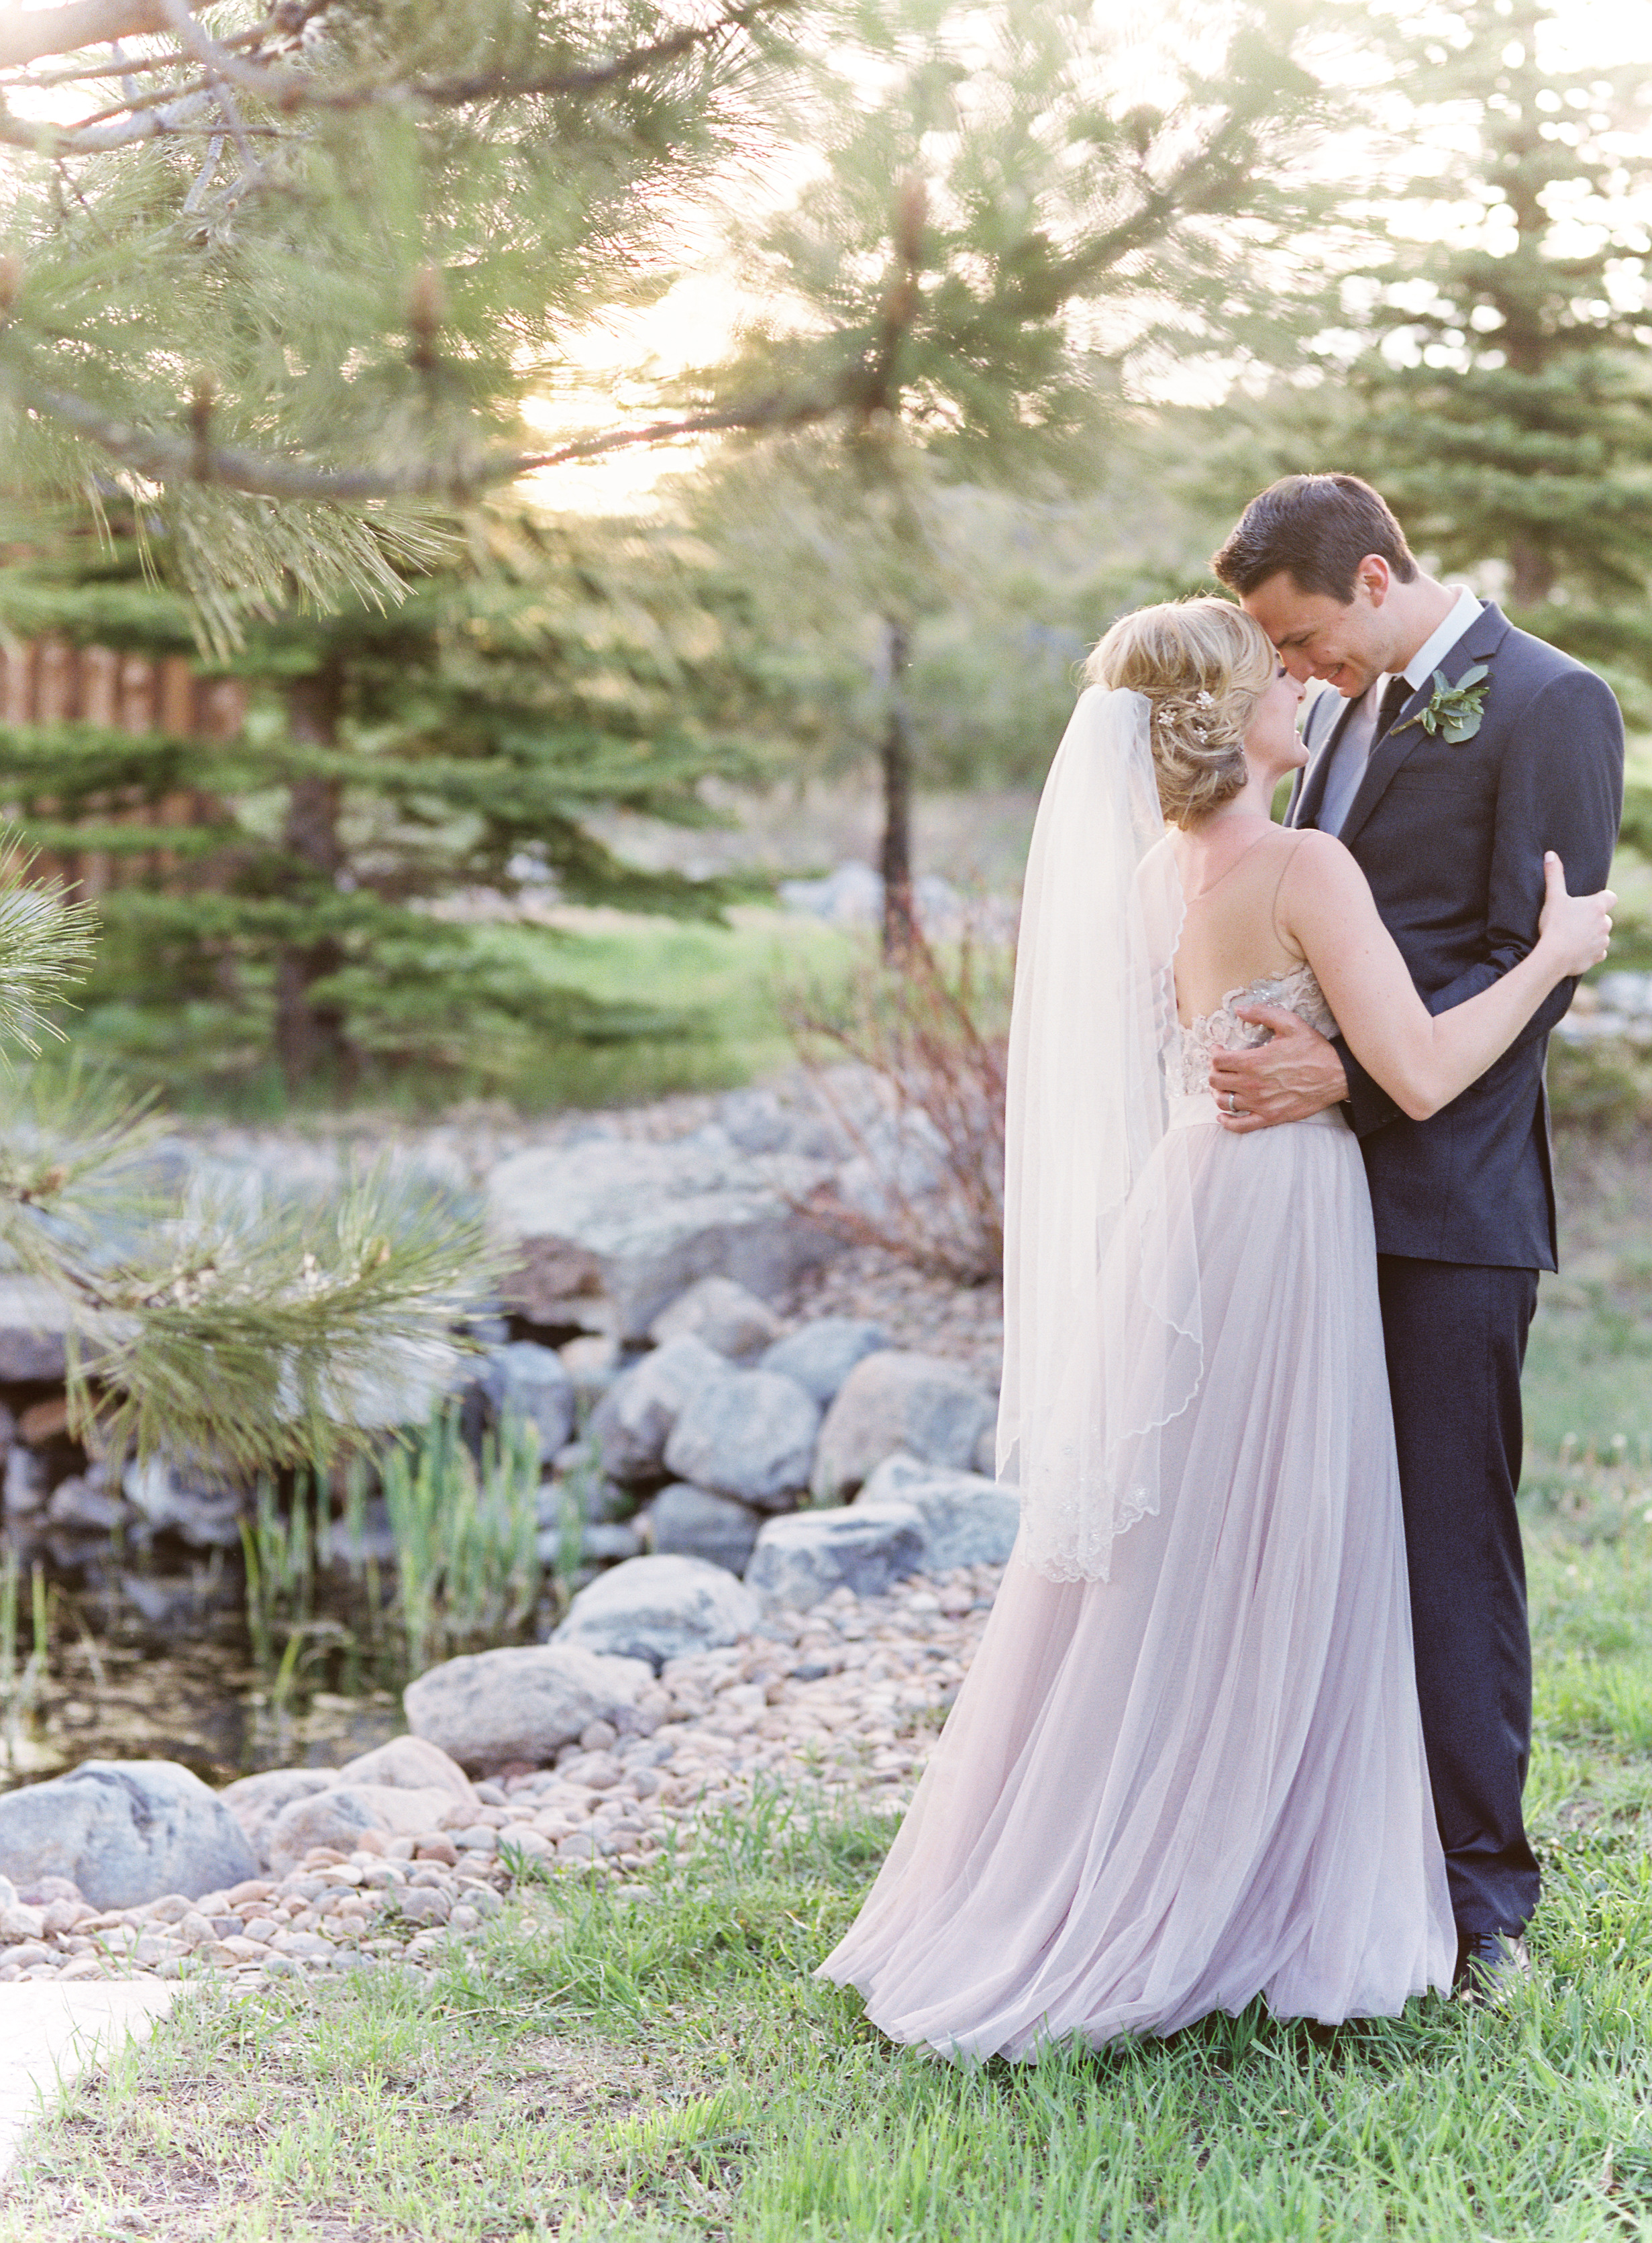 rustic-wedding-venues-across-the-us-lisa-odwyer-spruce-mountain-ranch